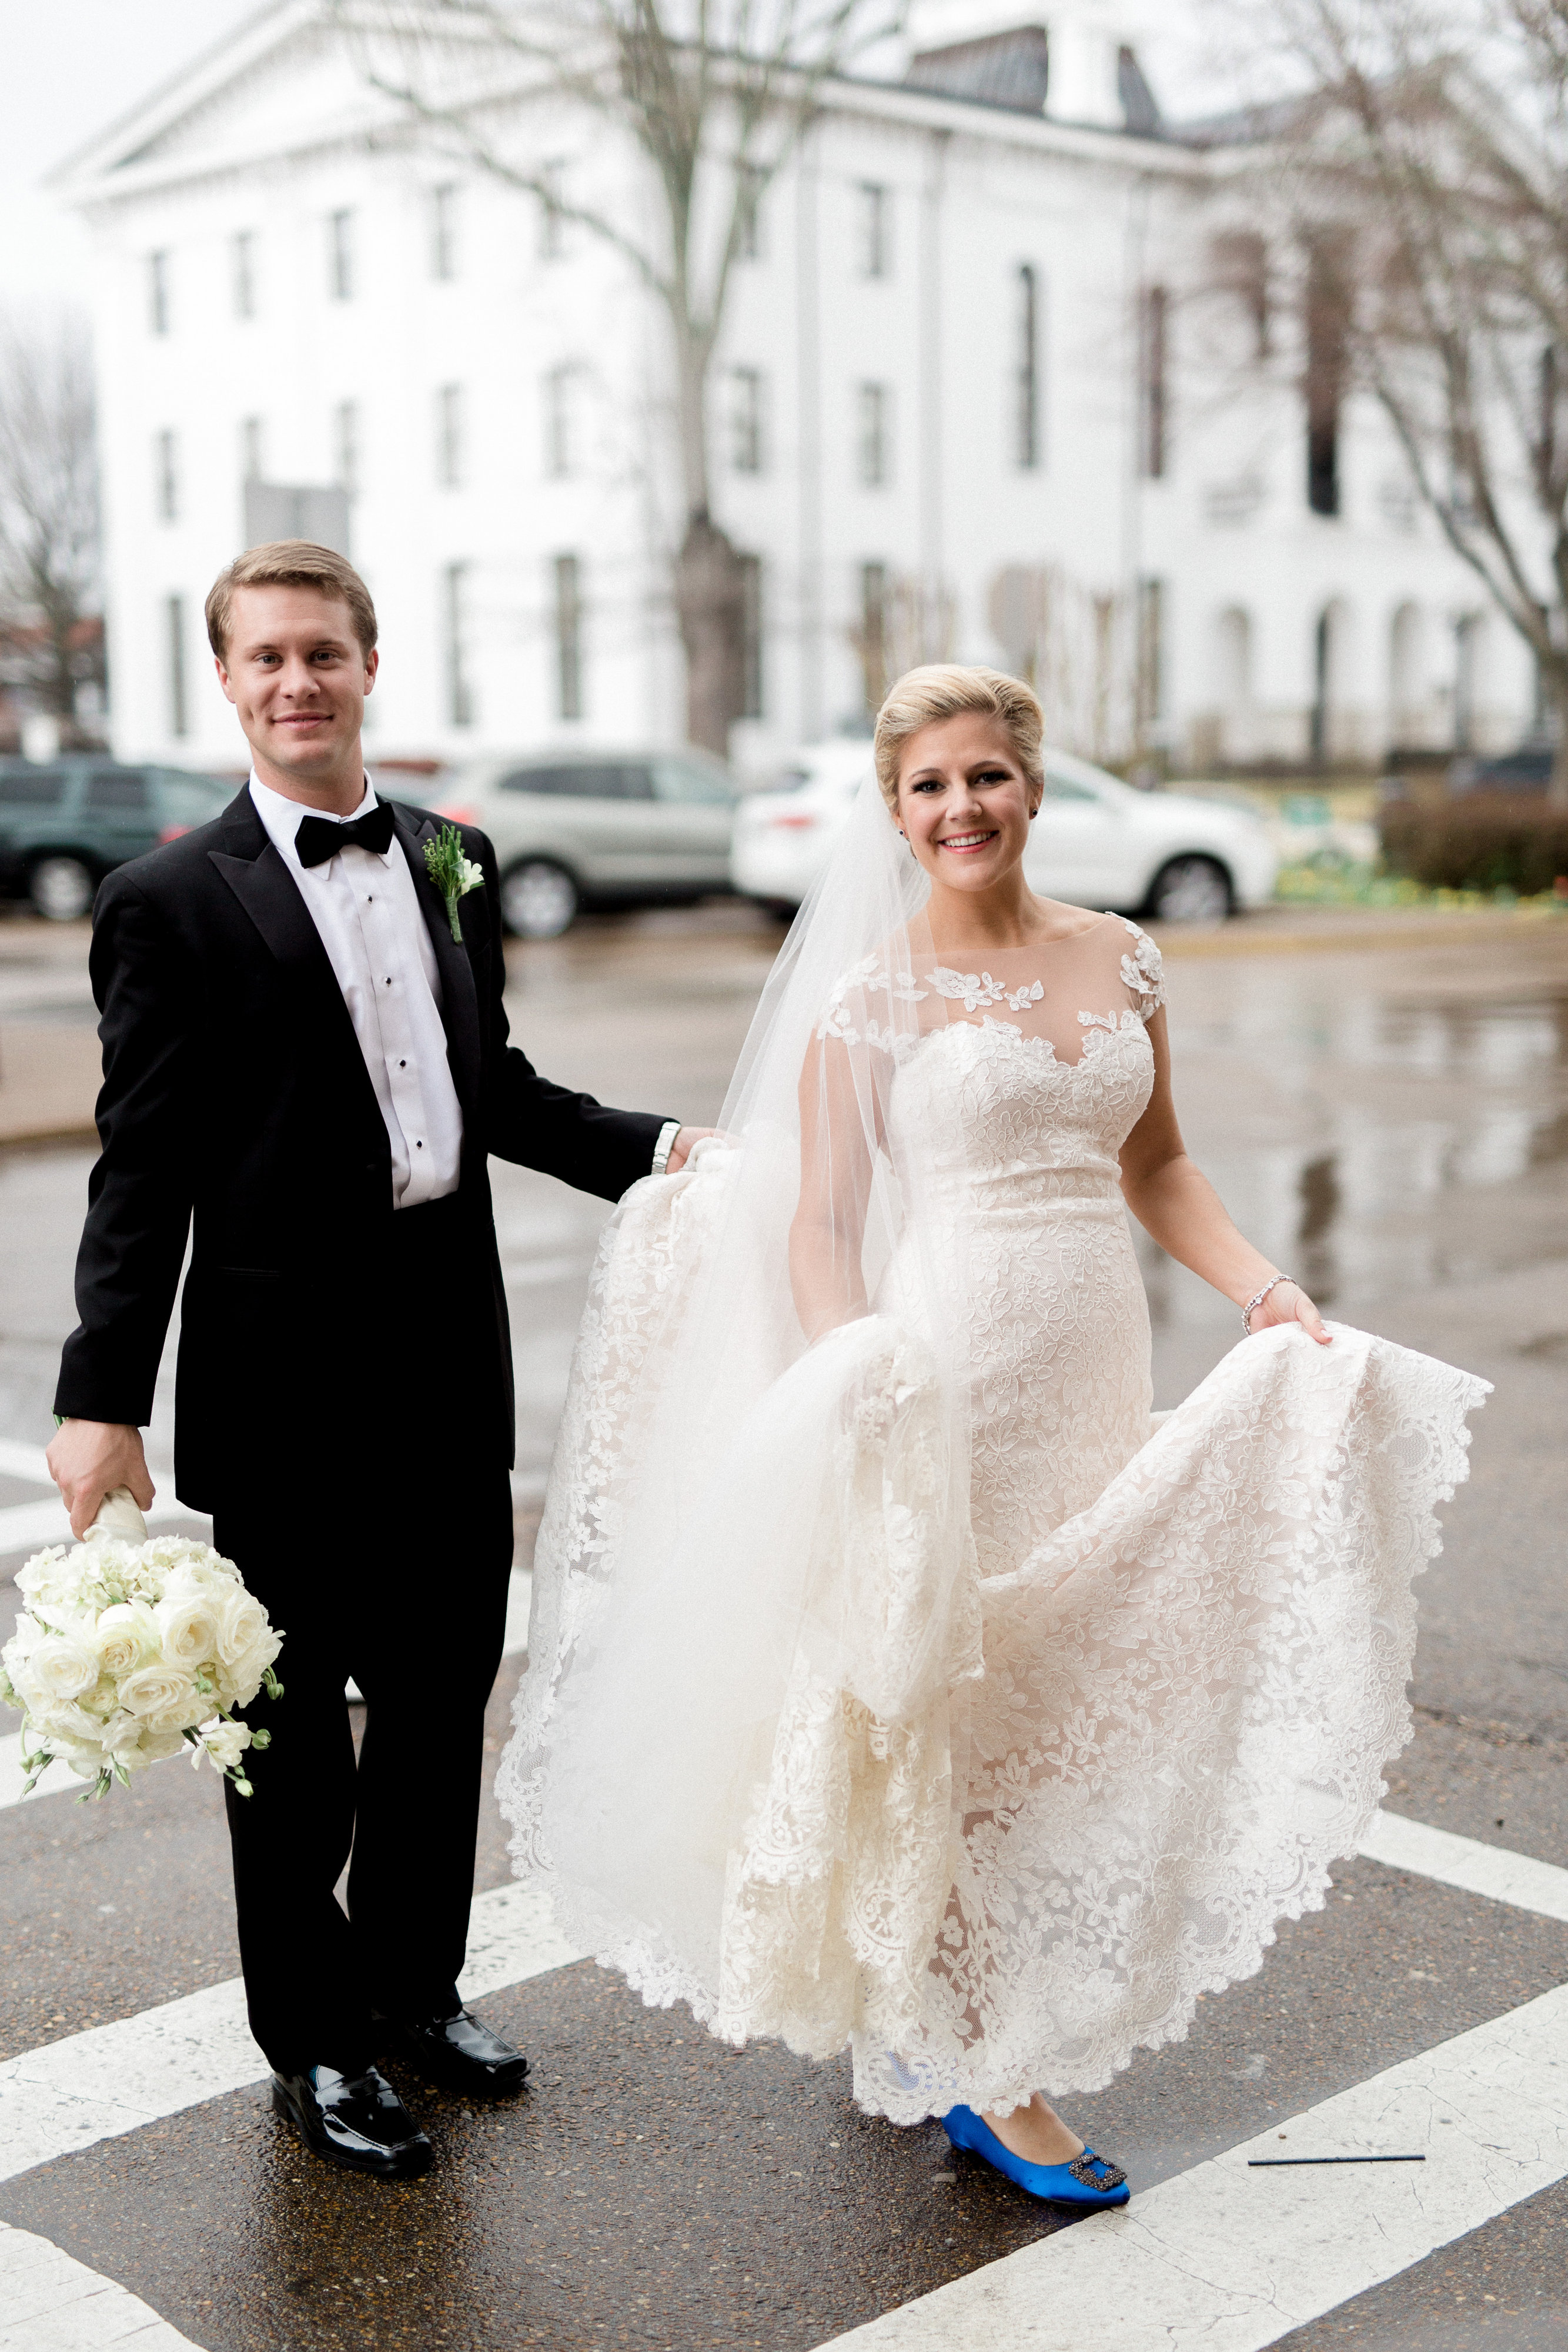 Wedding of Sommer Elizabeth Richesin & Lucas Conerly Ballard - I DO ...